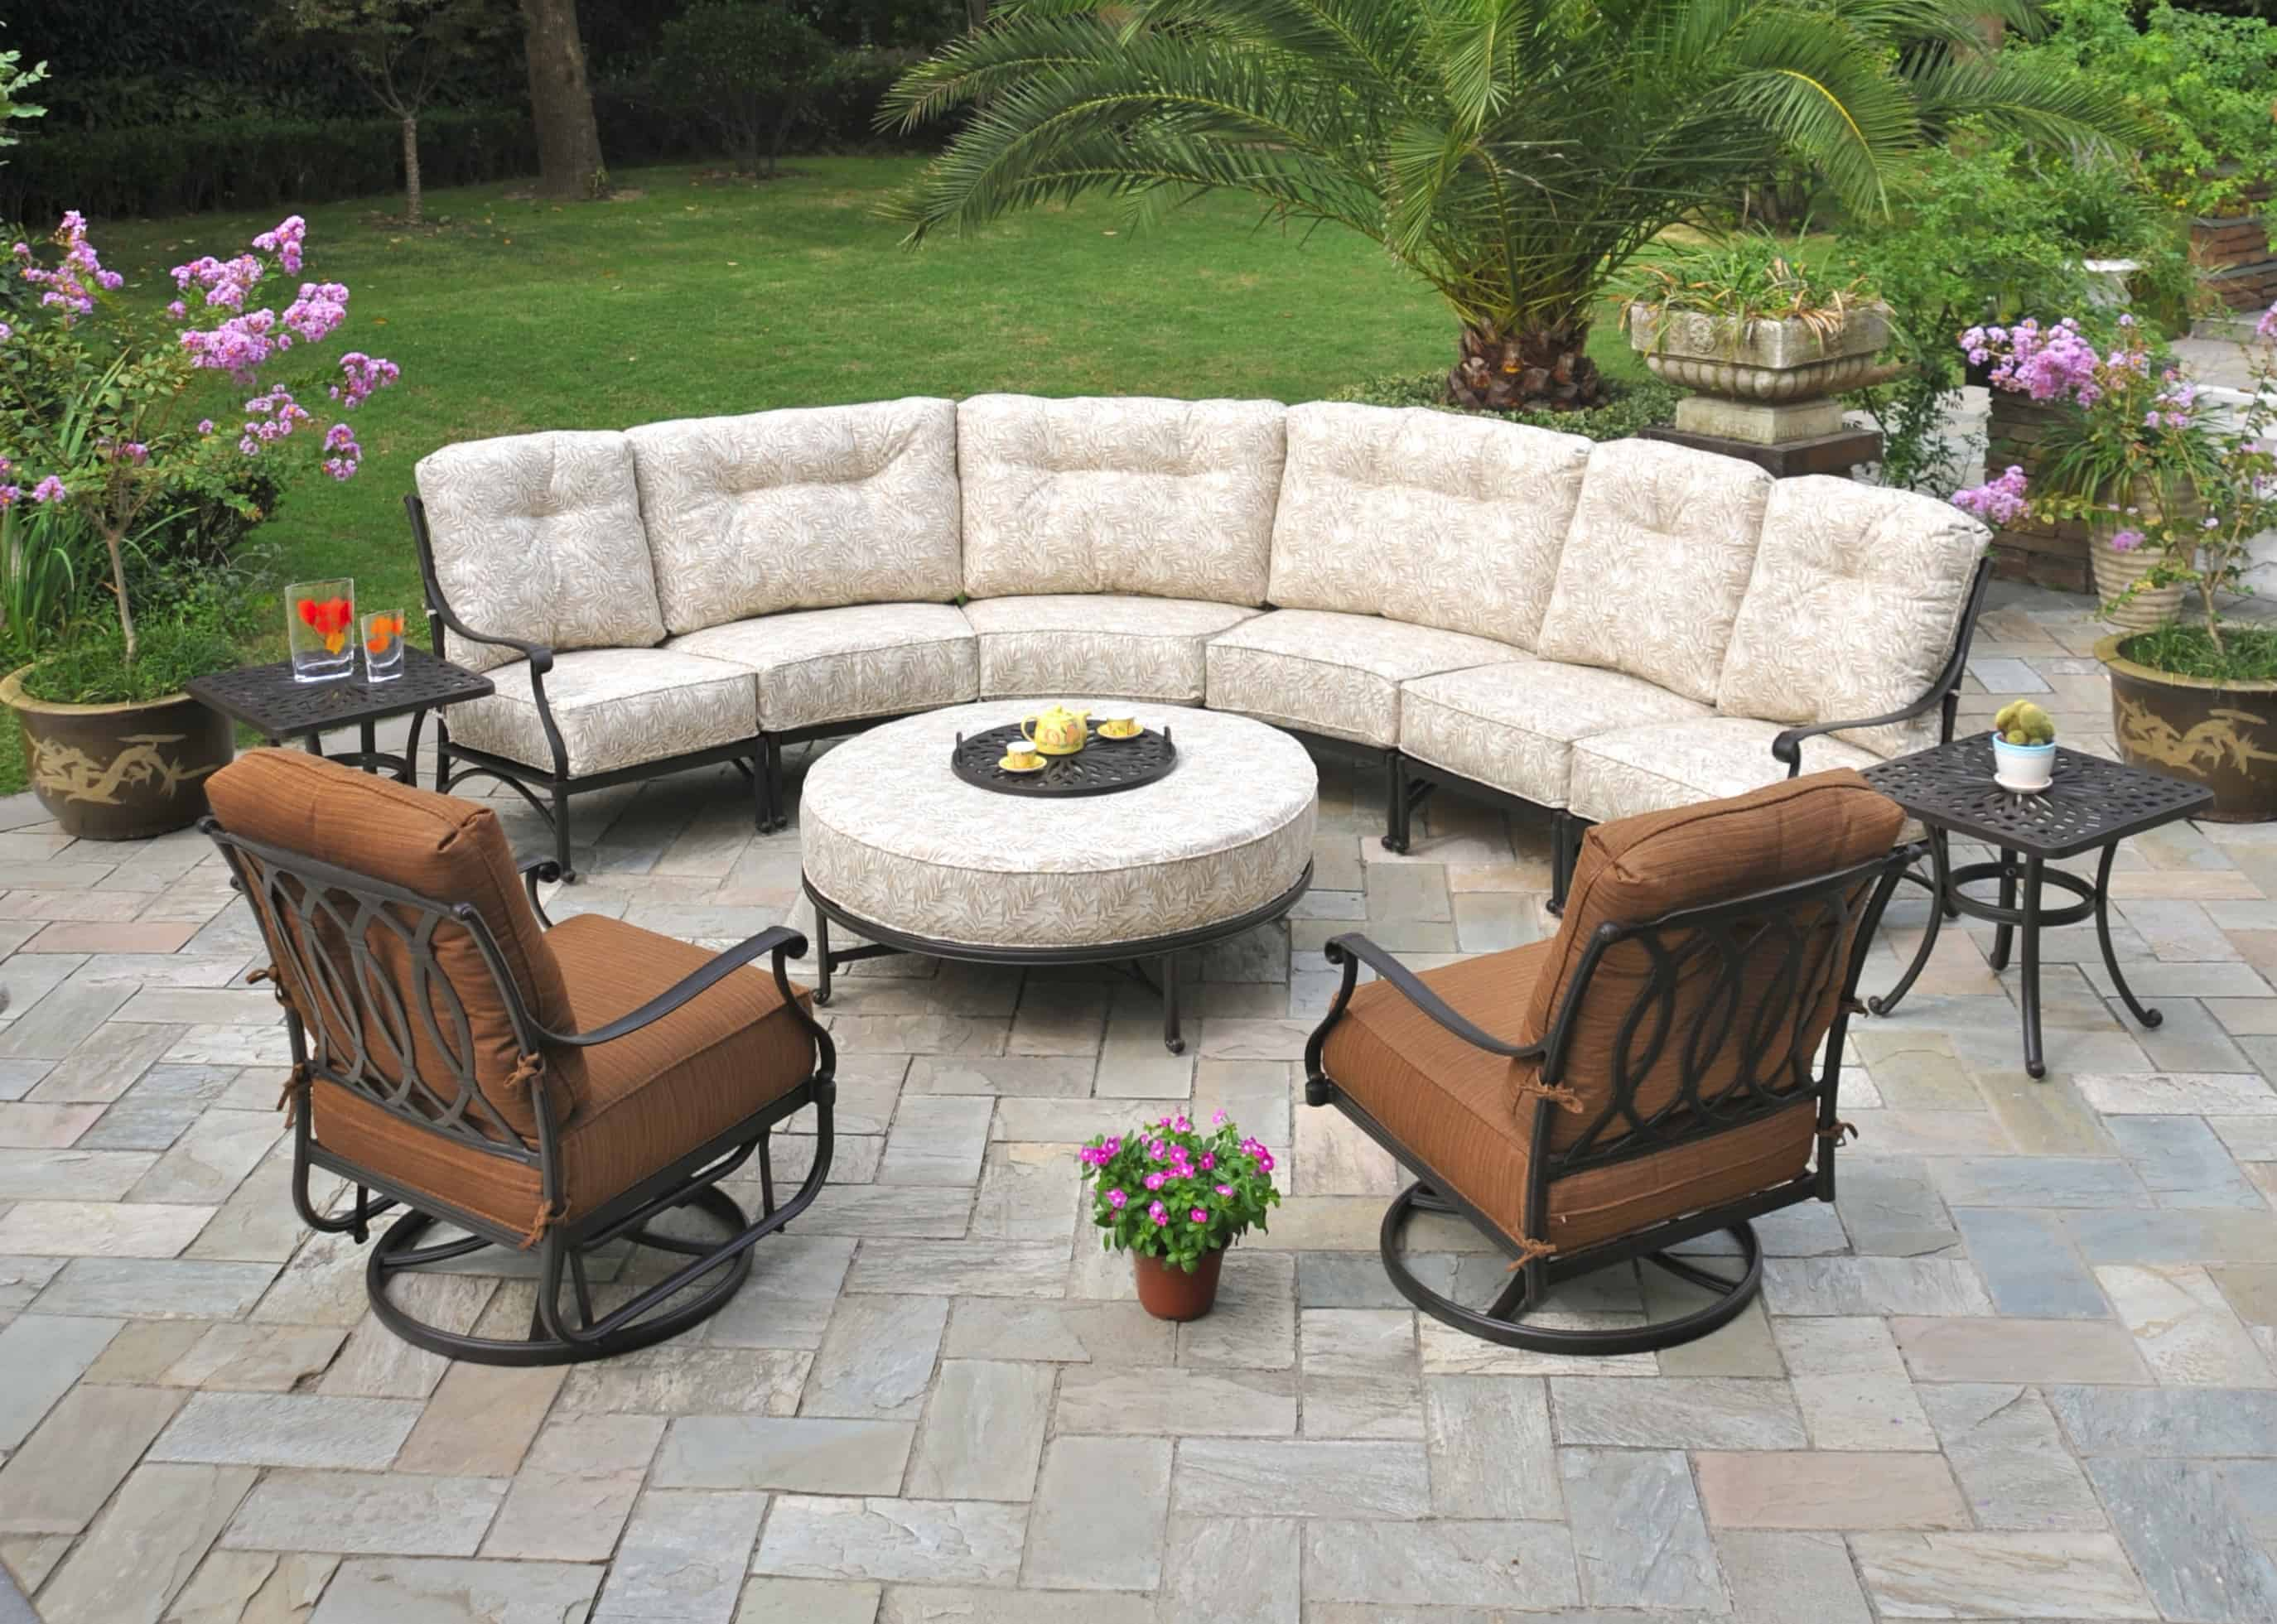 High Quality Patio Furniture Can Be A Big Investment, But It Can Also Offer  Huge Rewards. Comfortable, Long Lasting Furniture Will Greatly Enhance Your  ...